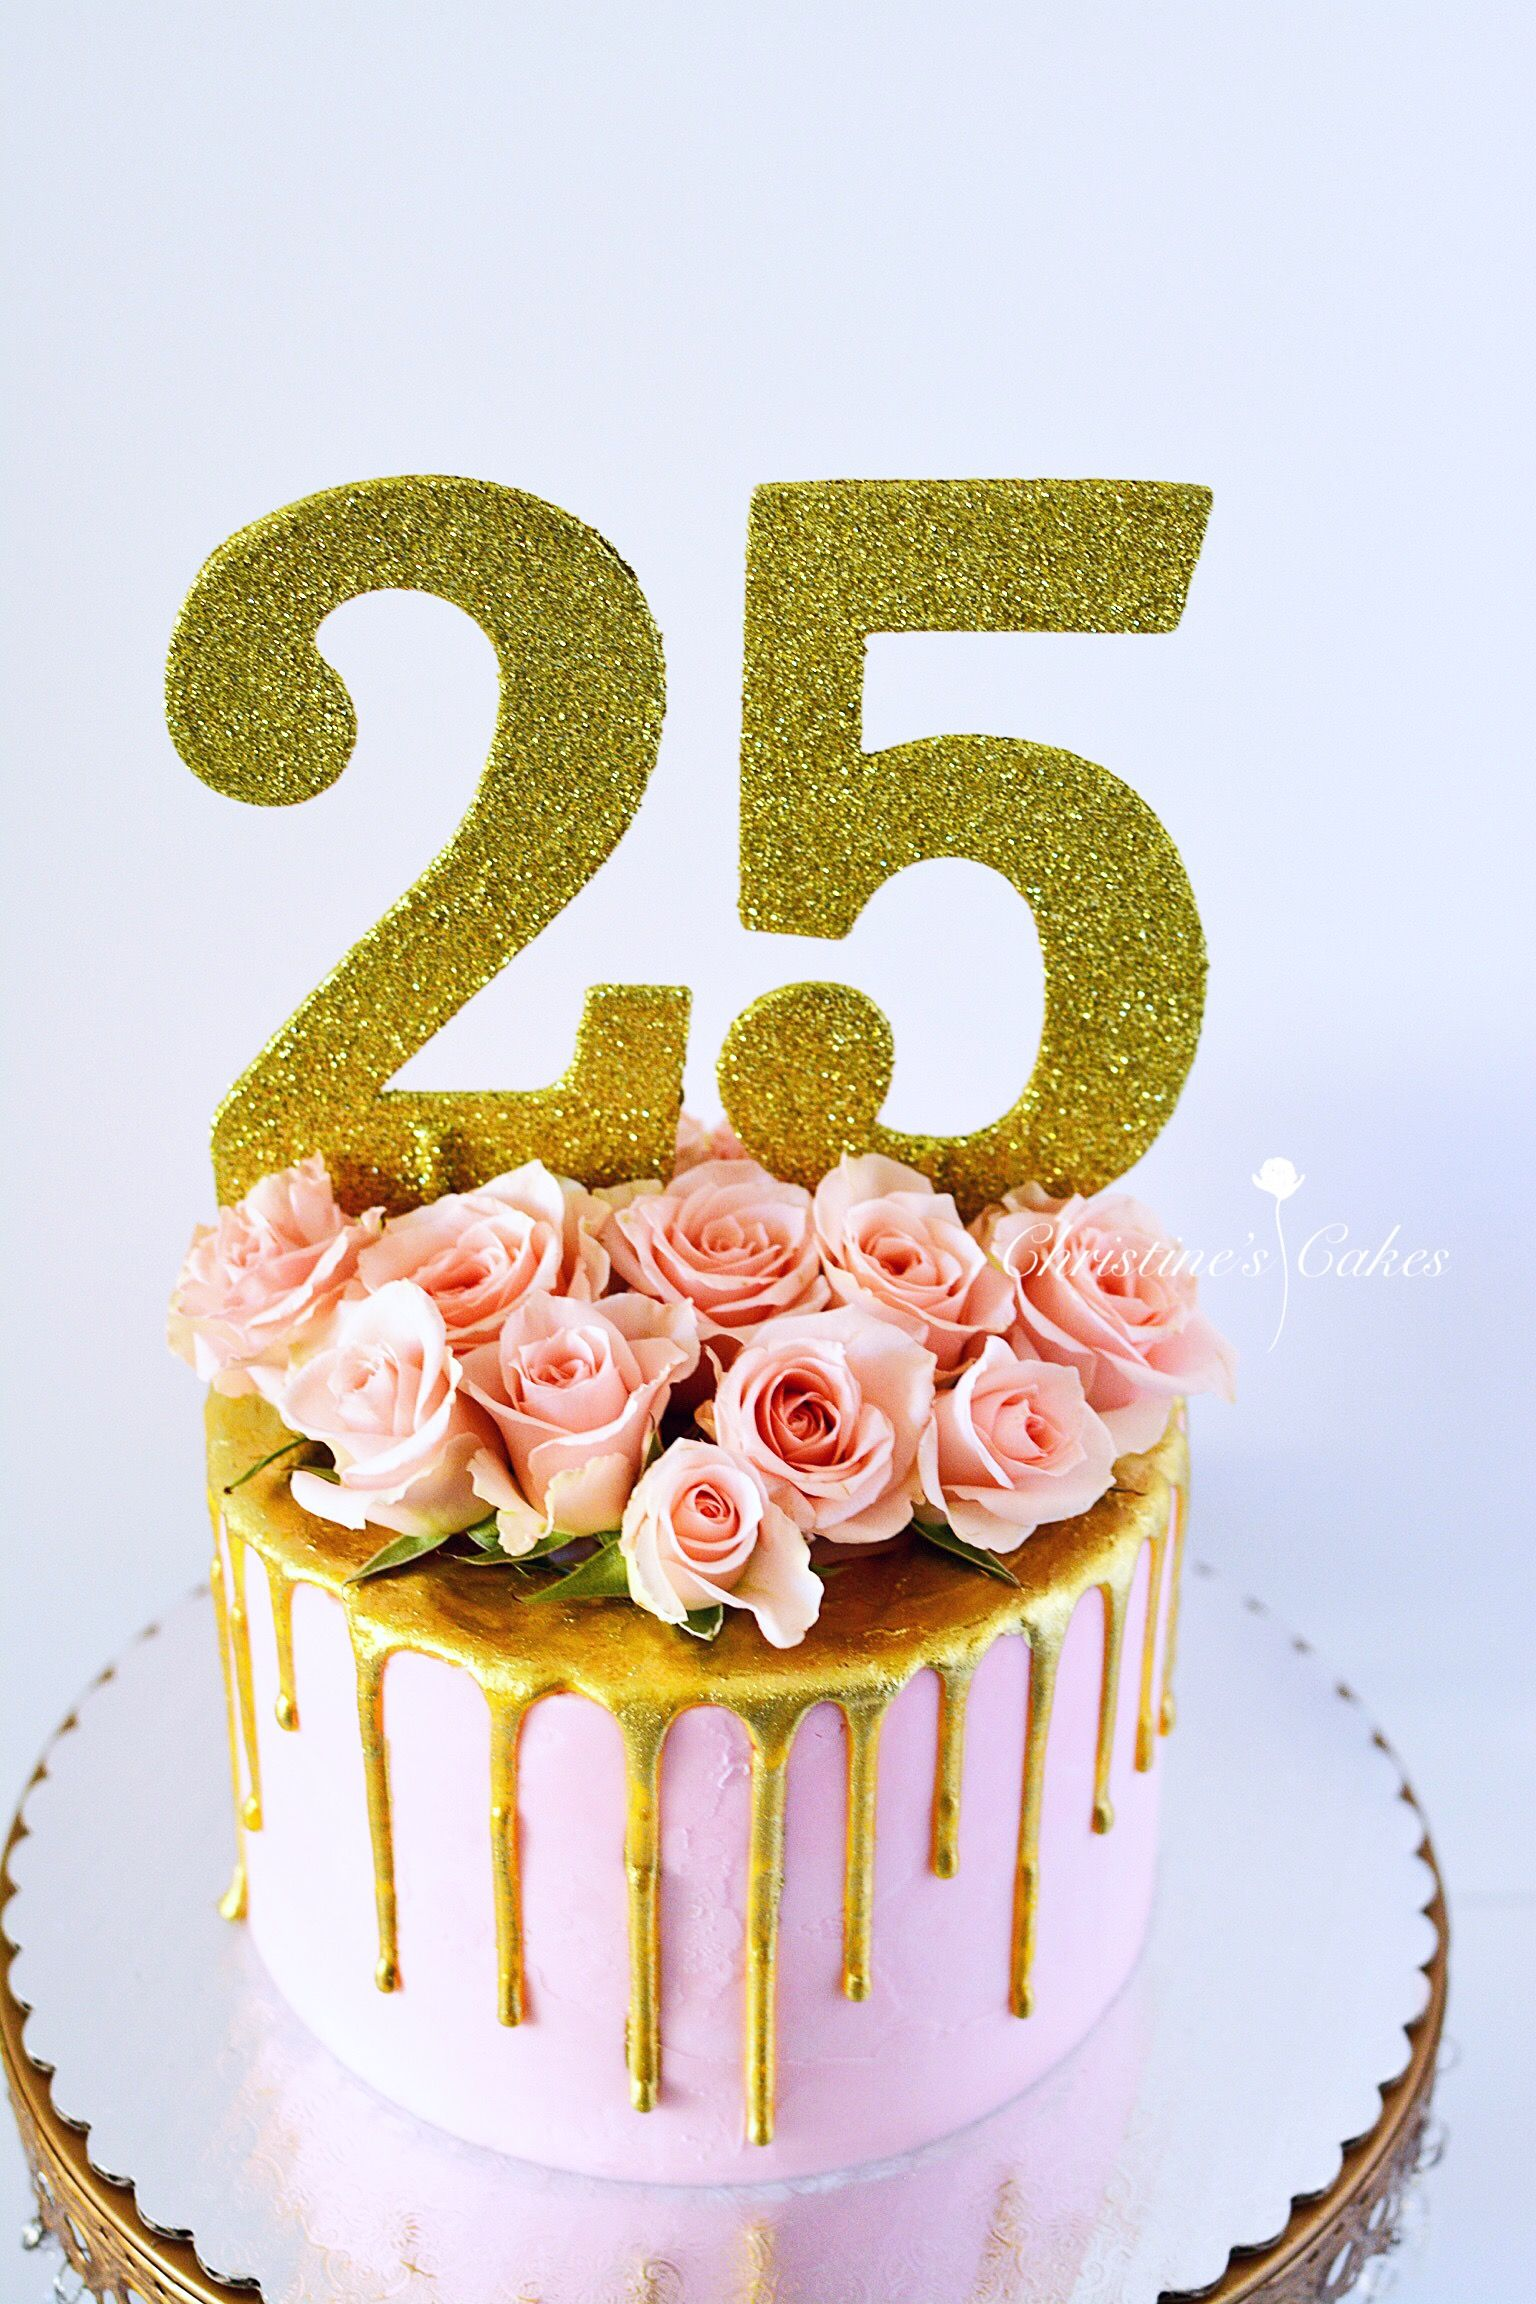 Pleasing 25Th Birthday Birthday Cake Pink Spray Roses Floral Cake Gold Funny Birthday Cards Online Alyptdamsfinfo